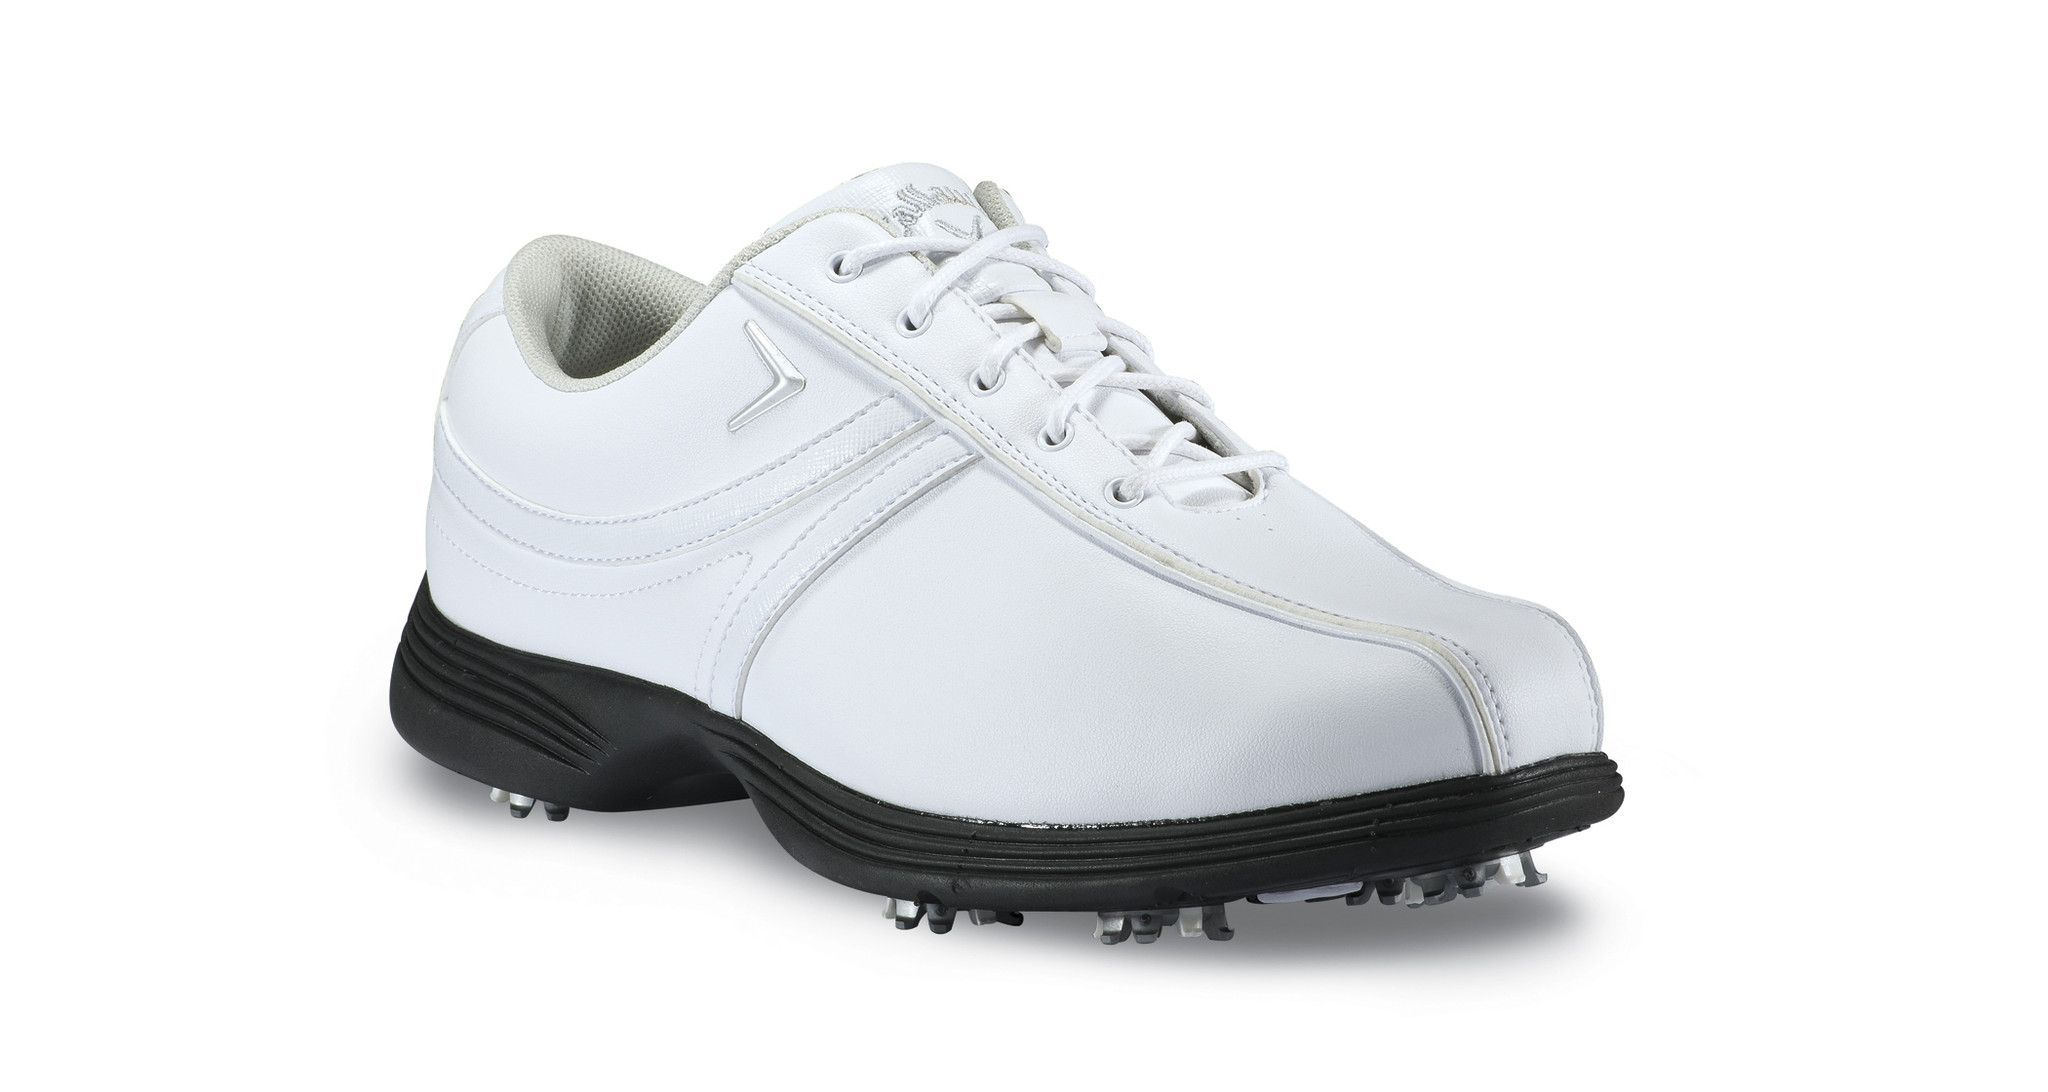 Callaway Savory W428 White golf shoes, Golf shoes, Shoes